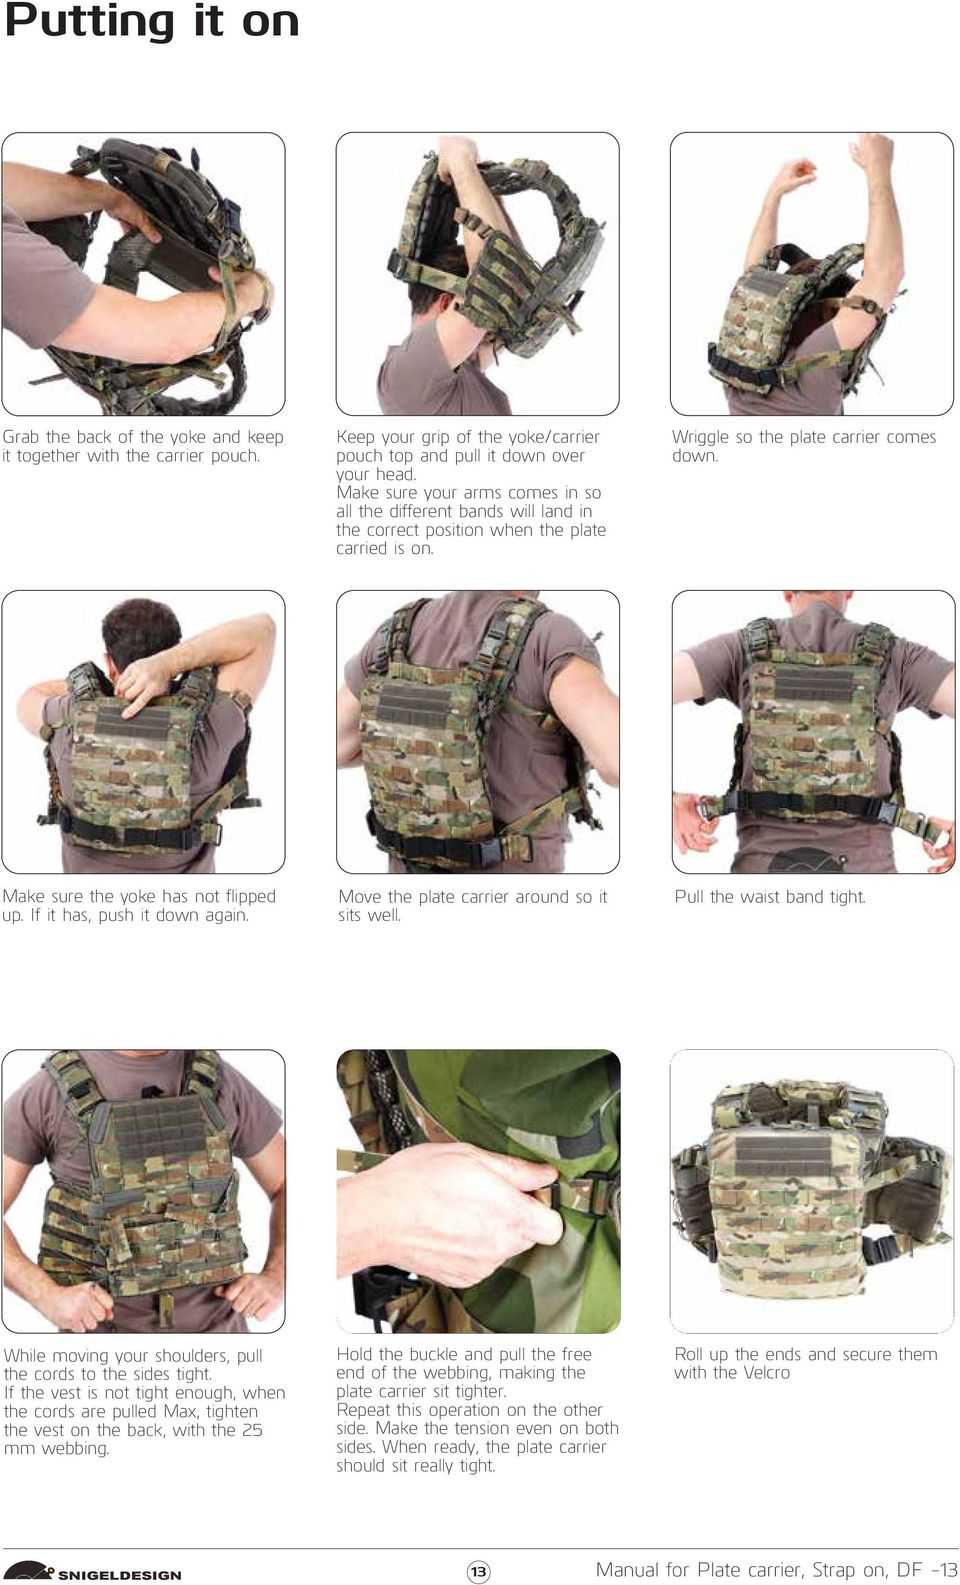 If it has, push it down again. Move the plate carrier around so it sits well. Pull the waist band tight. While moving your shoulders, pull the cords to the sides tight.